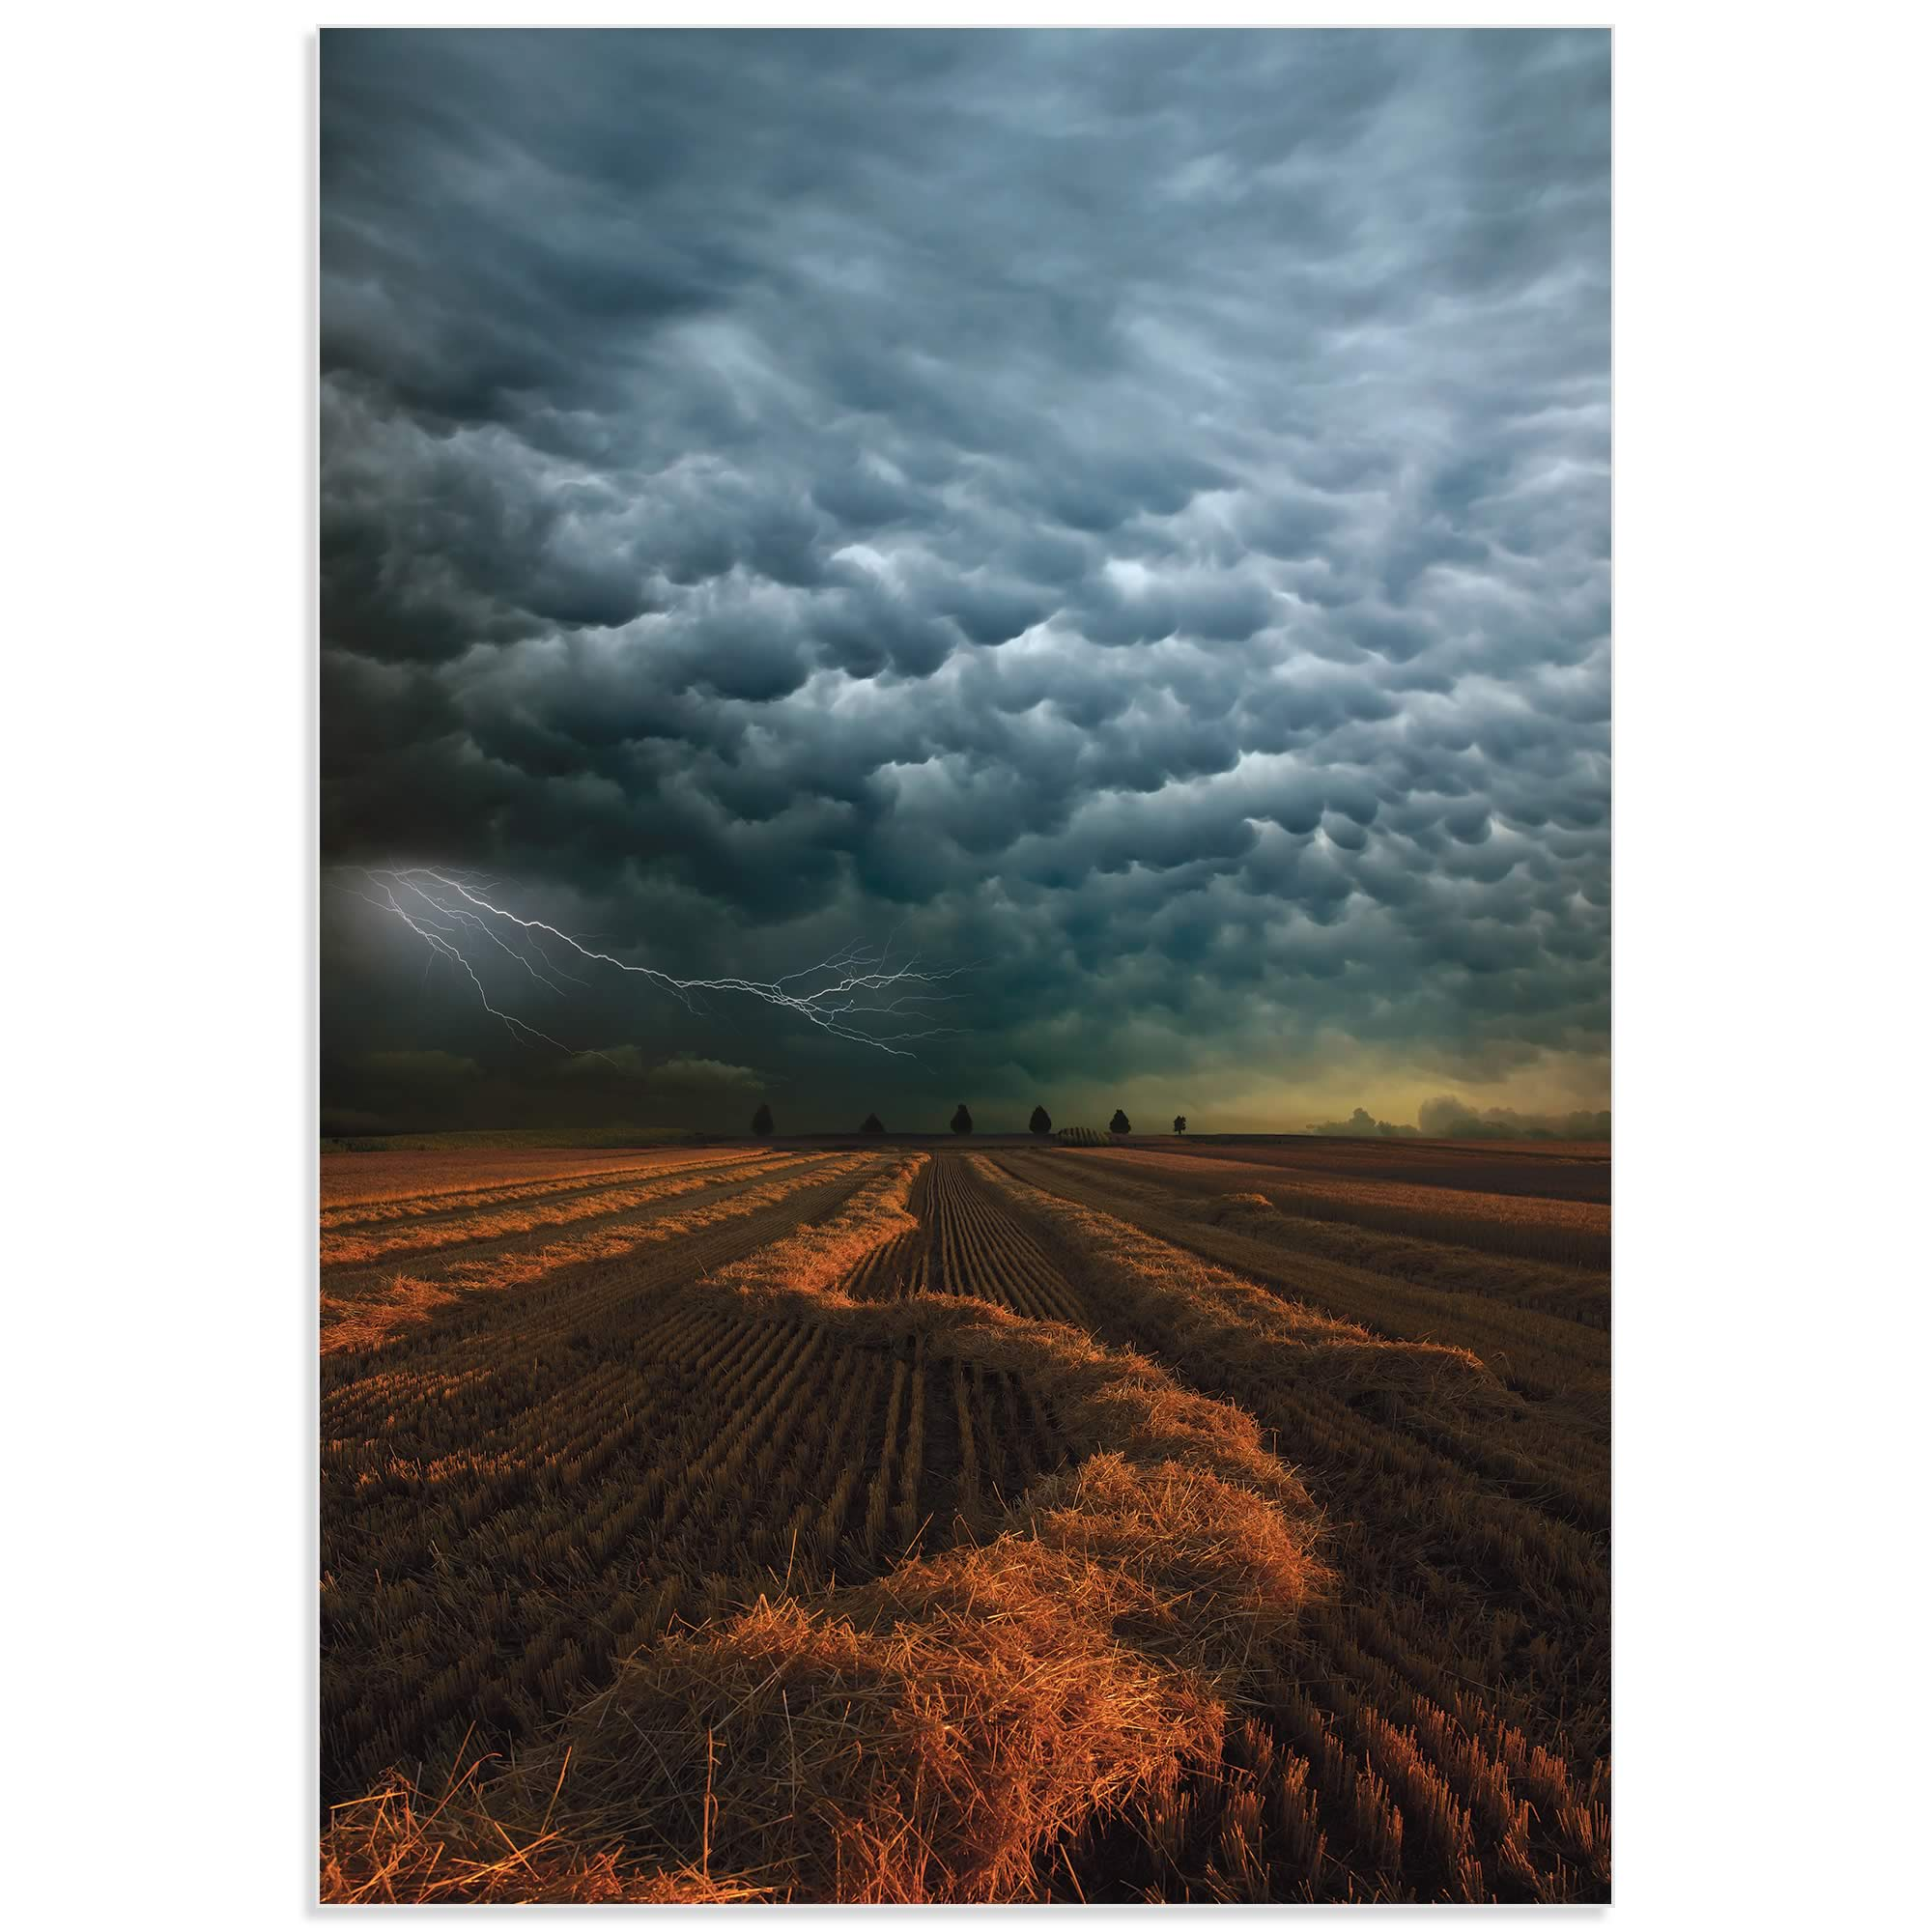 Mammatus Clouds by Franz Schumacher - Storm Pictures on Metal or Acrylic - Alternate View 2